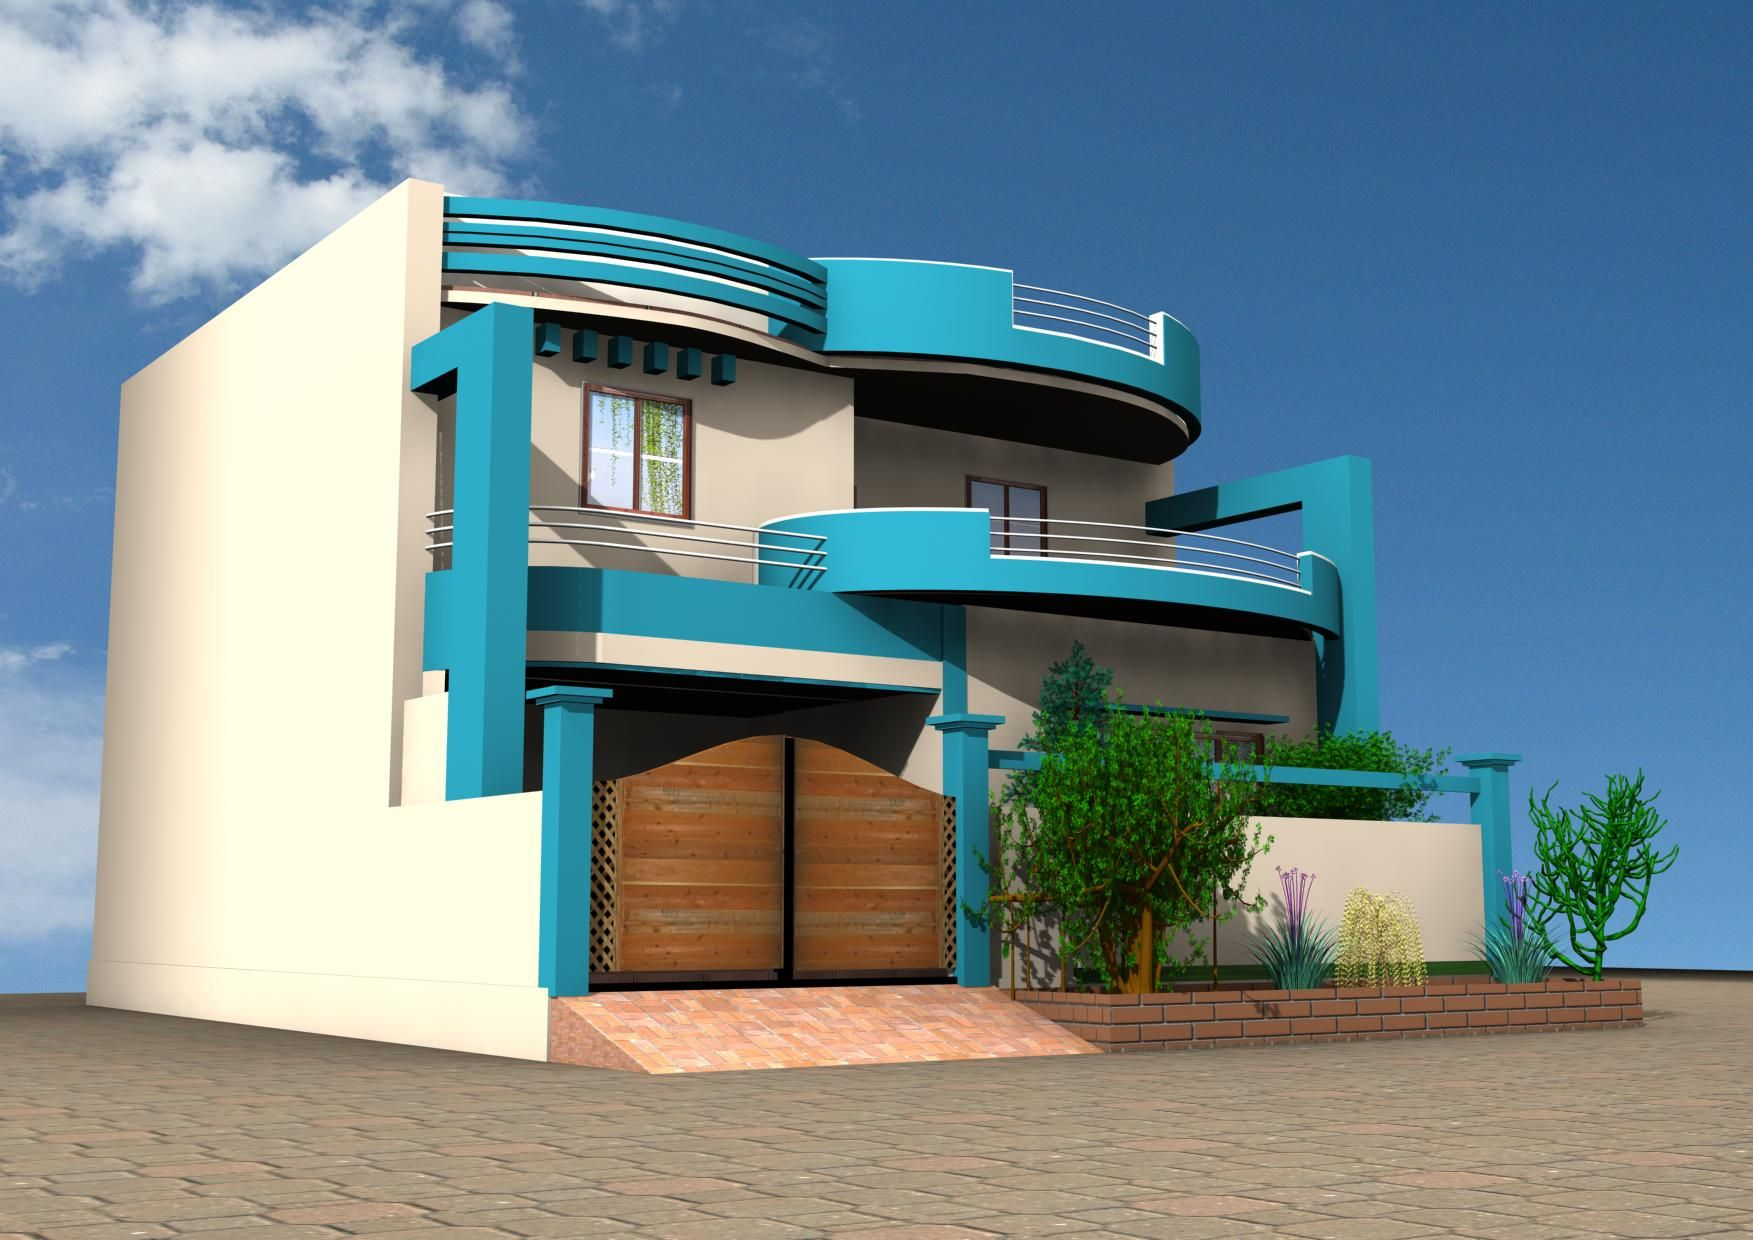 3d home design images hd 1080p for Http www indian home design com